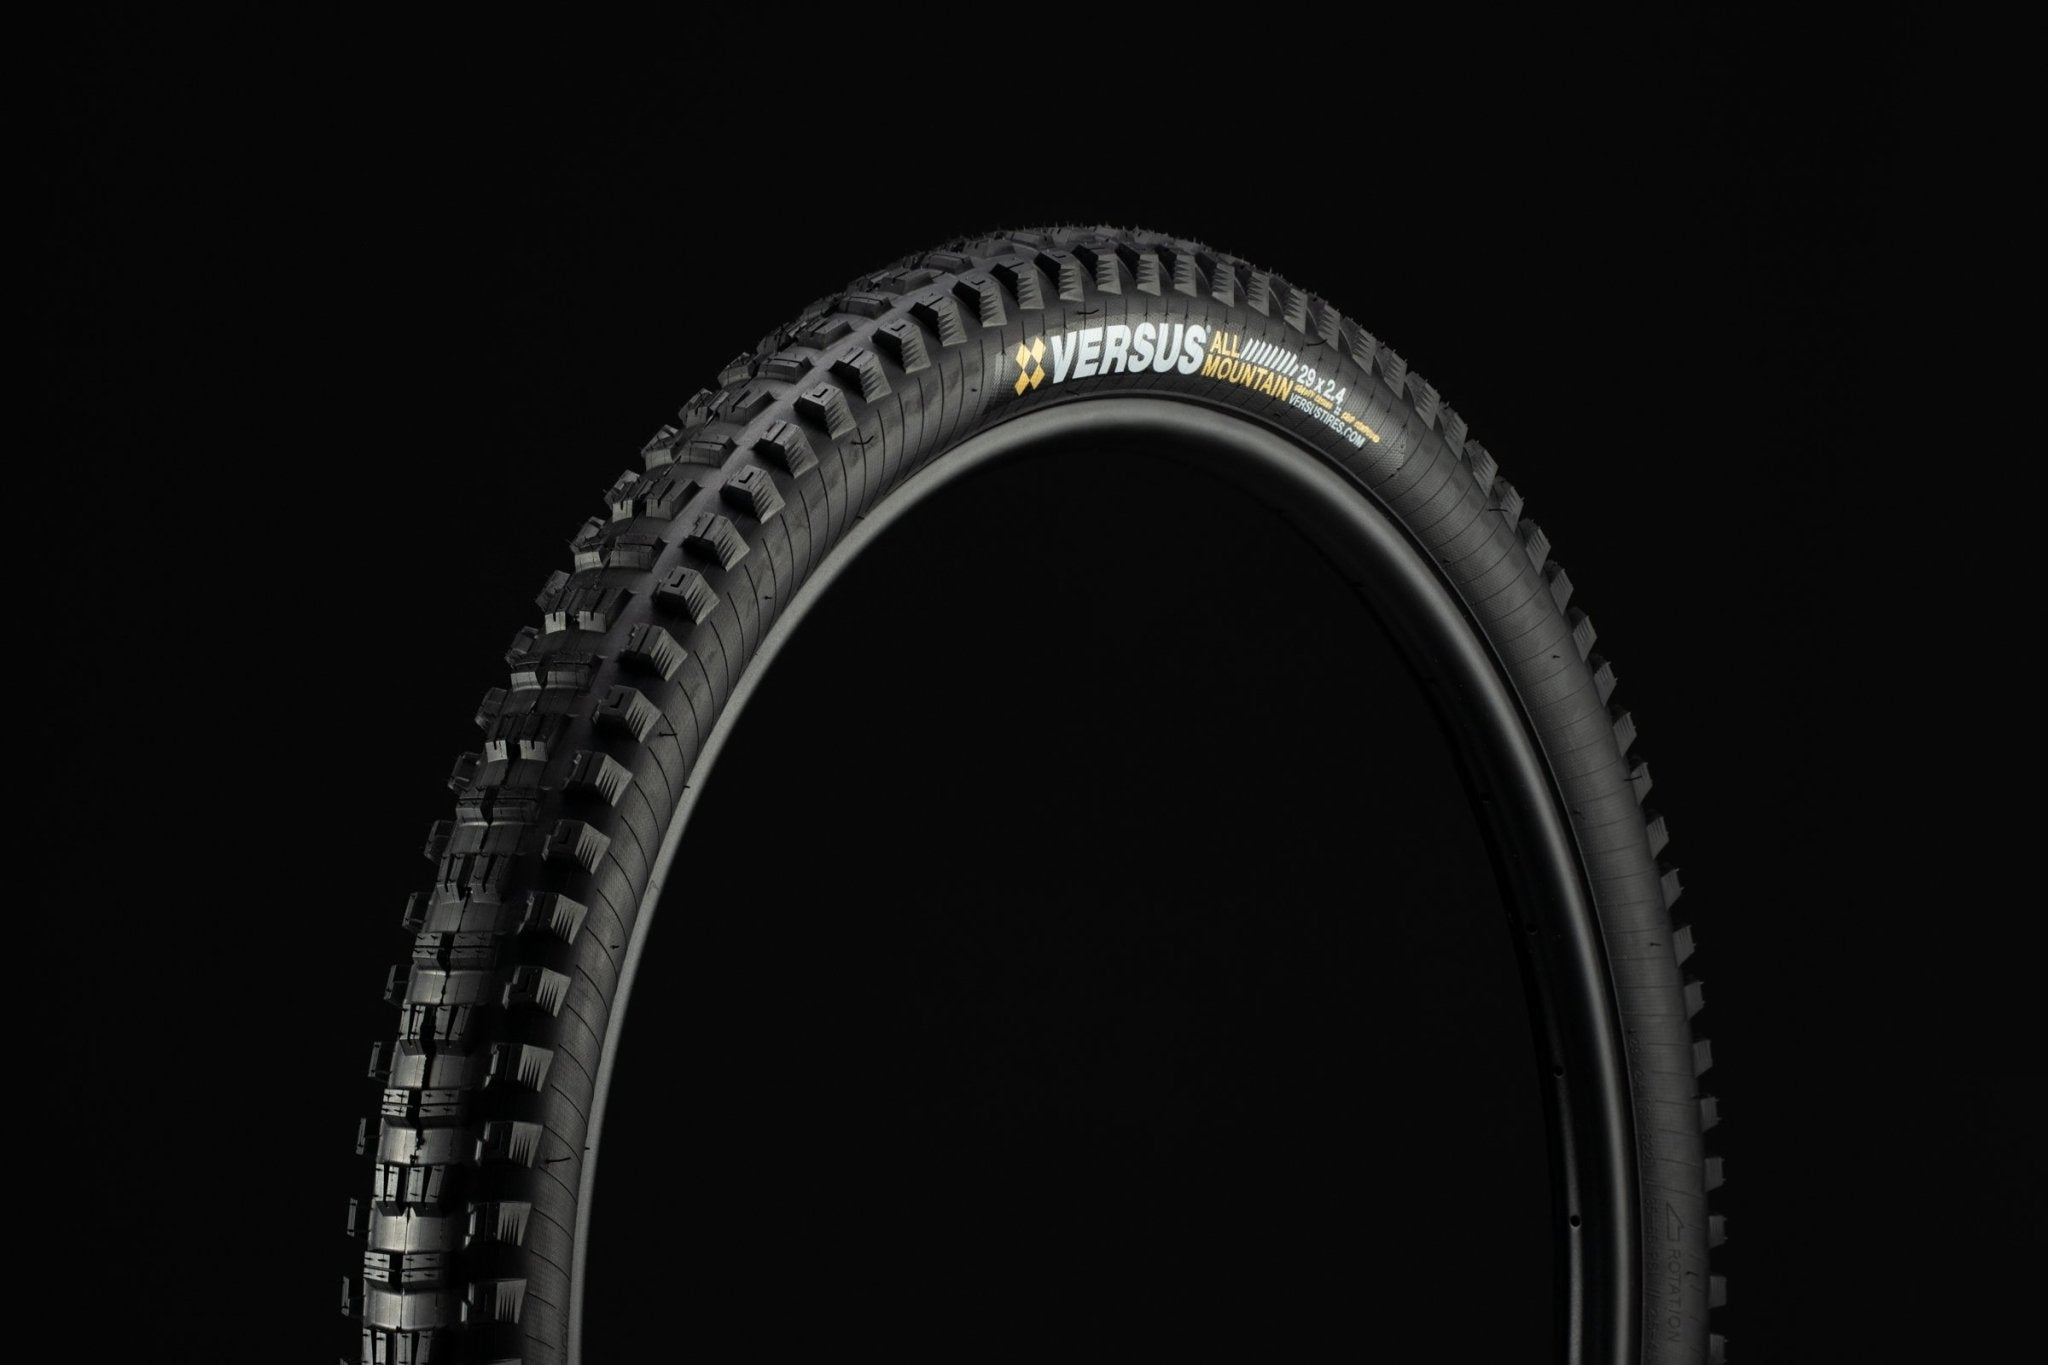 "All Mountain // Gravity Casing // 29x2.4"" (1 set of 2 tires) - Versus Tires"